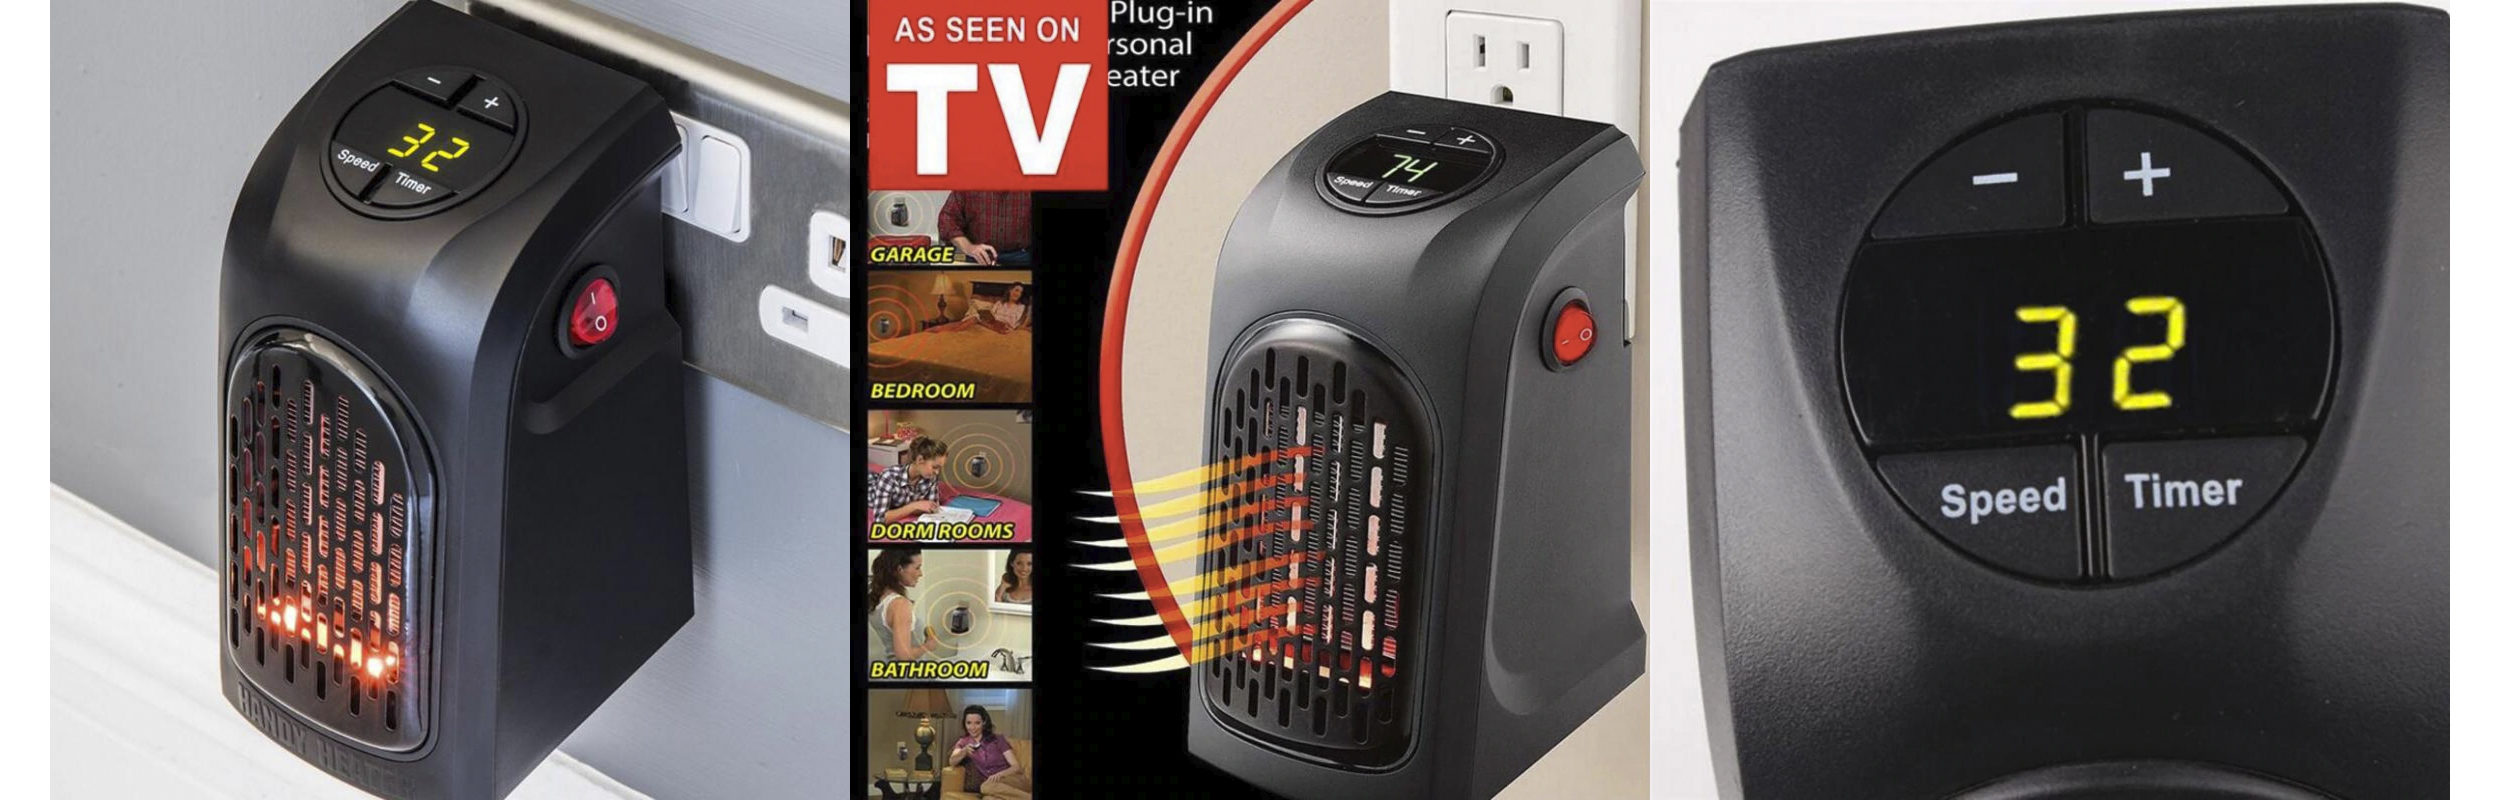 Electric-Wall-Heater-Mini-Portable-Plug.jpeg